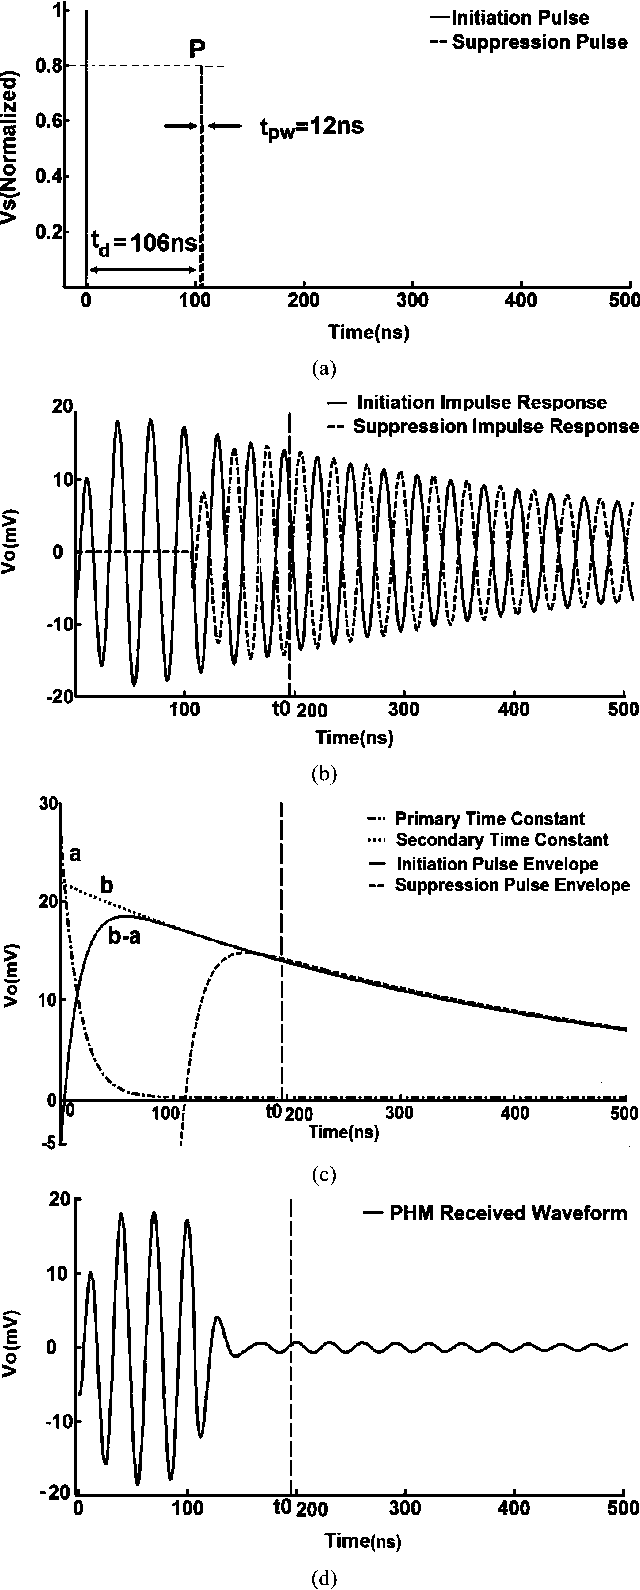 Wideband Near Field Data Transmission Using Pulse Harmonic Impulse Modulated Infrared Transmitter Circuit Modulation Semantic Scholar